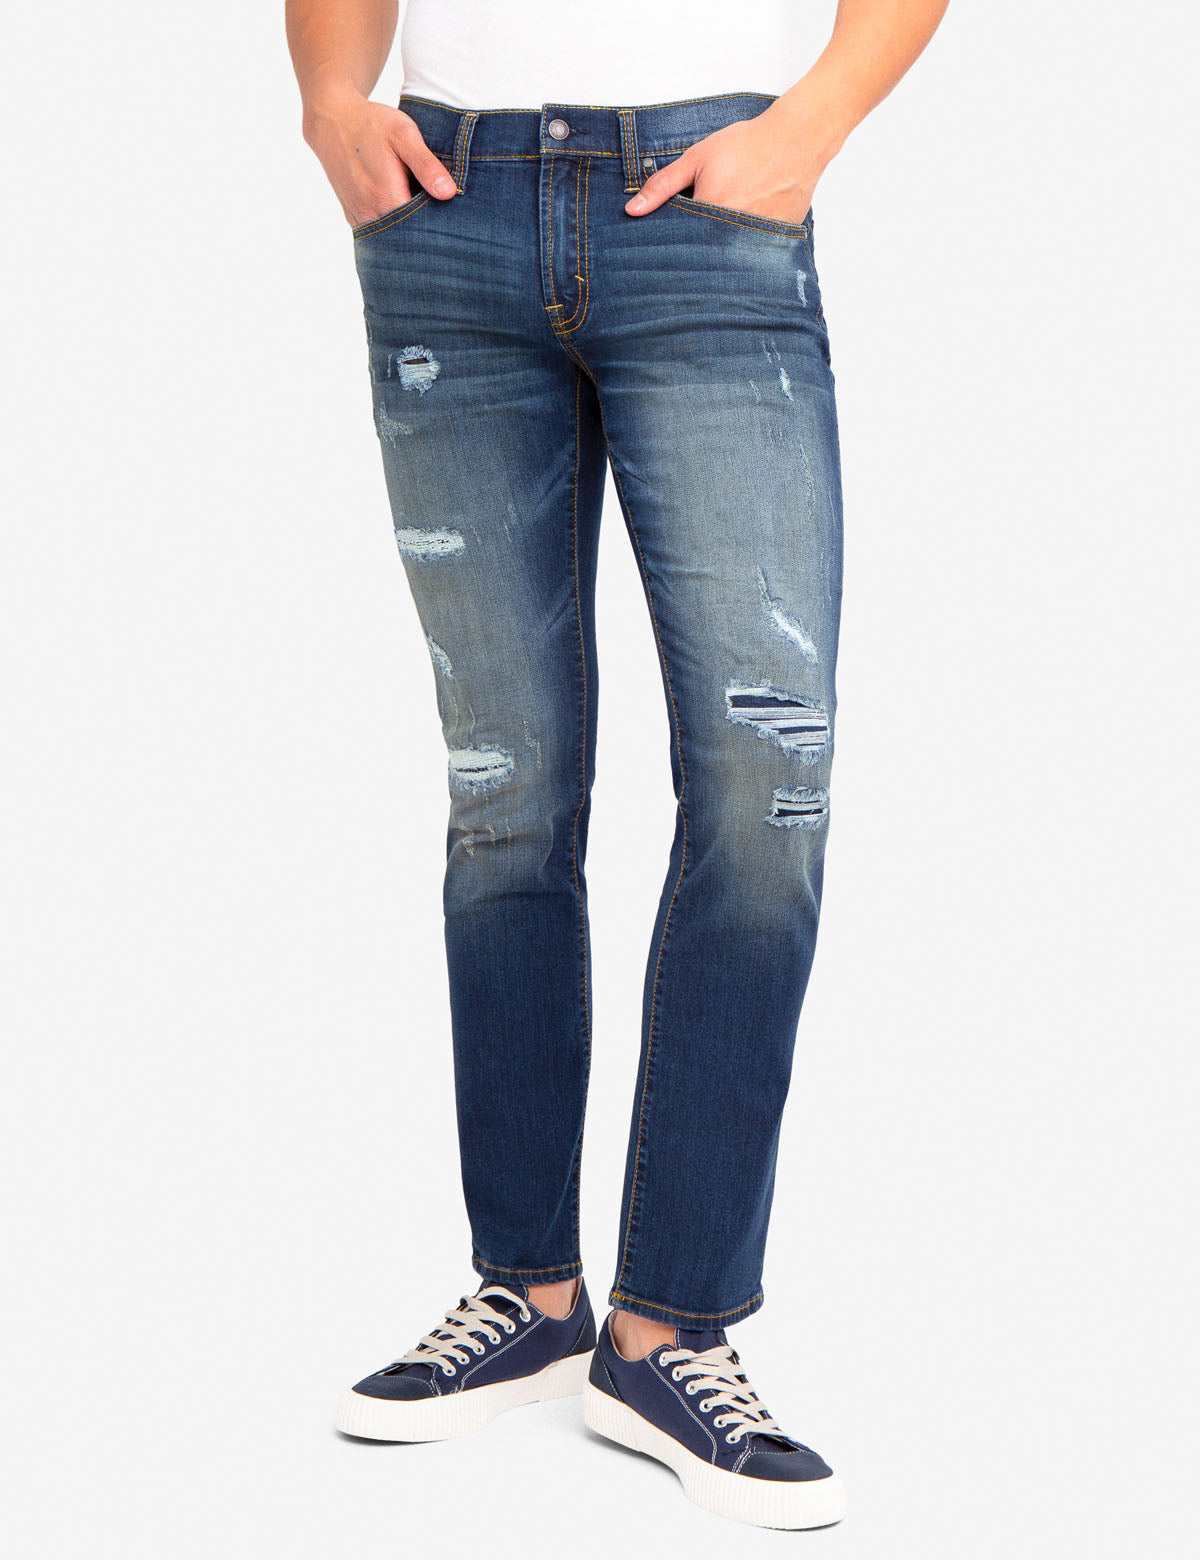 REPREVE® SLIM JEANS WITH RIP & REPAIR